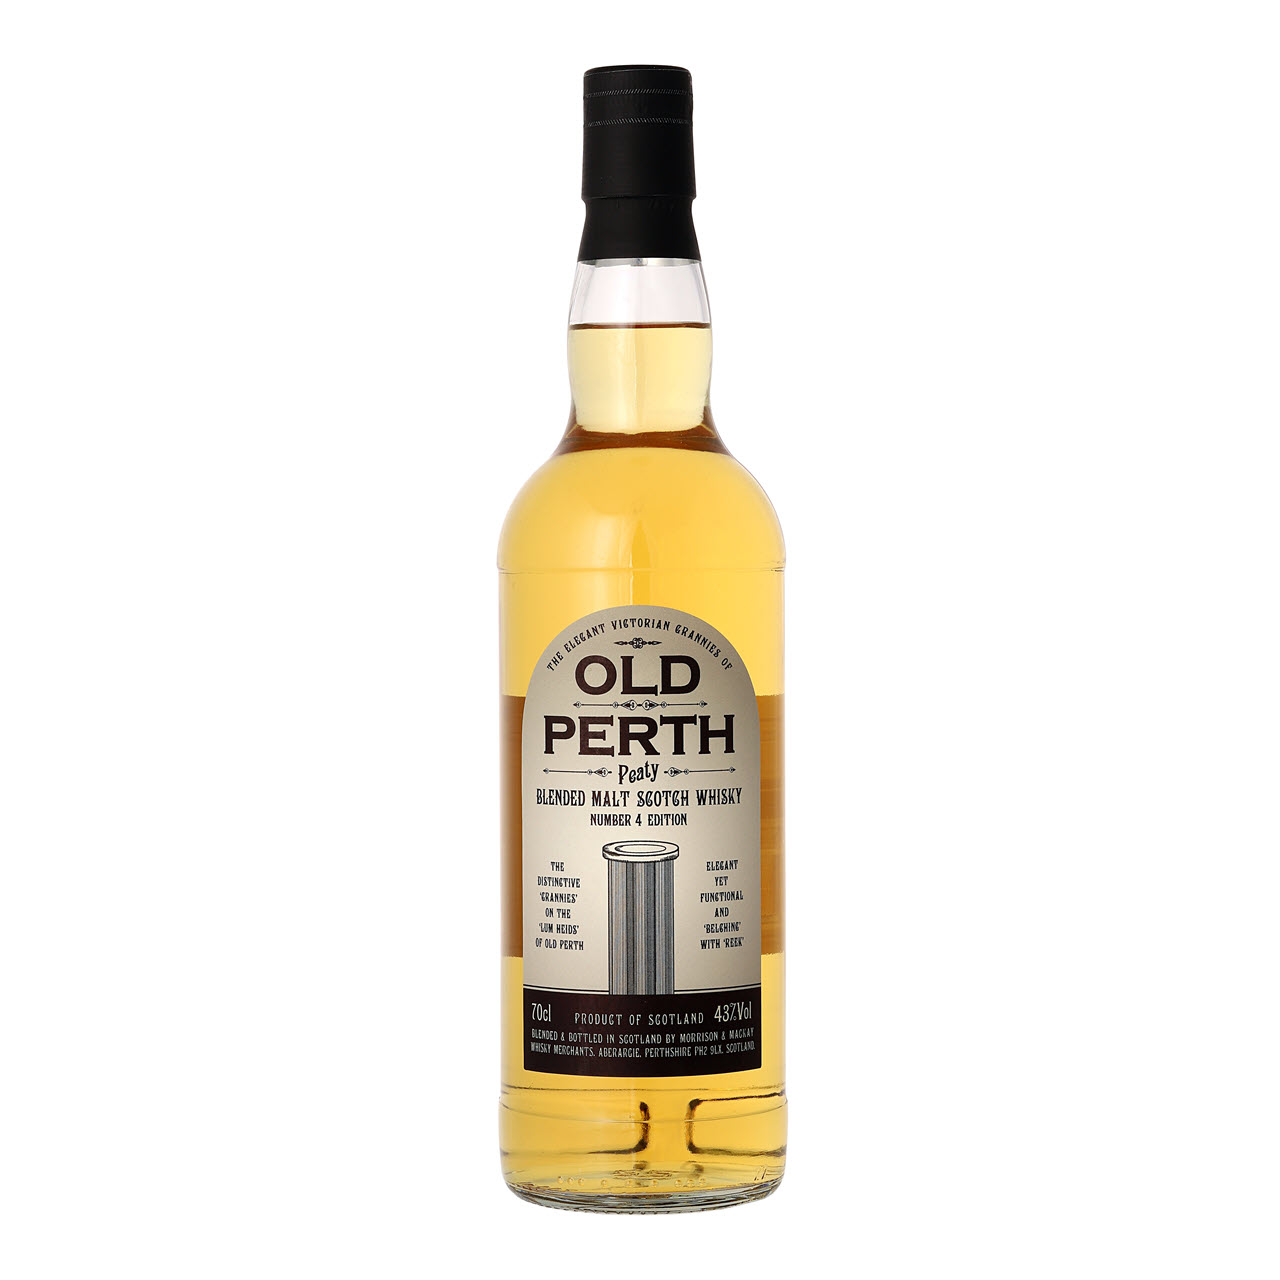 Old-Perth-peaty-number-4-edition.jpg